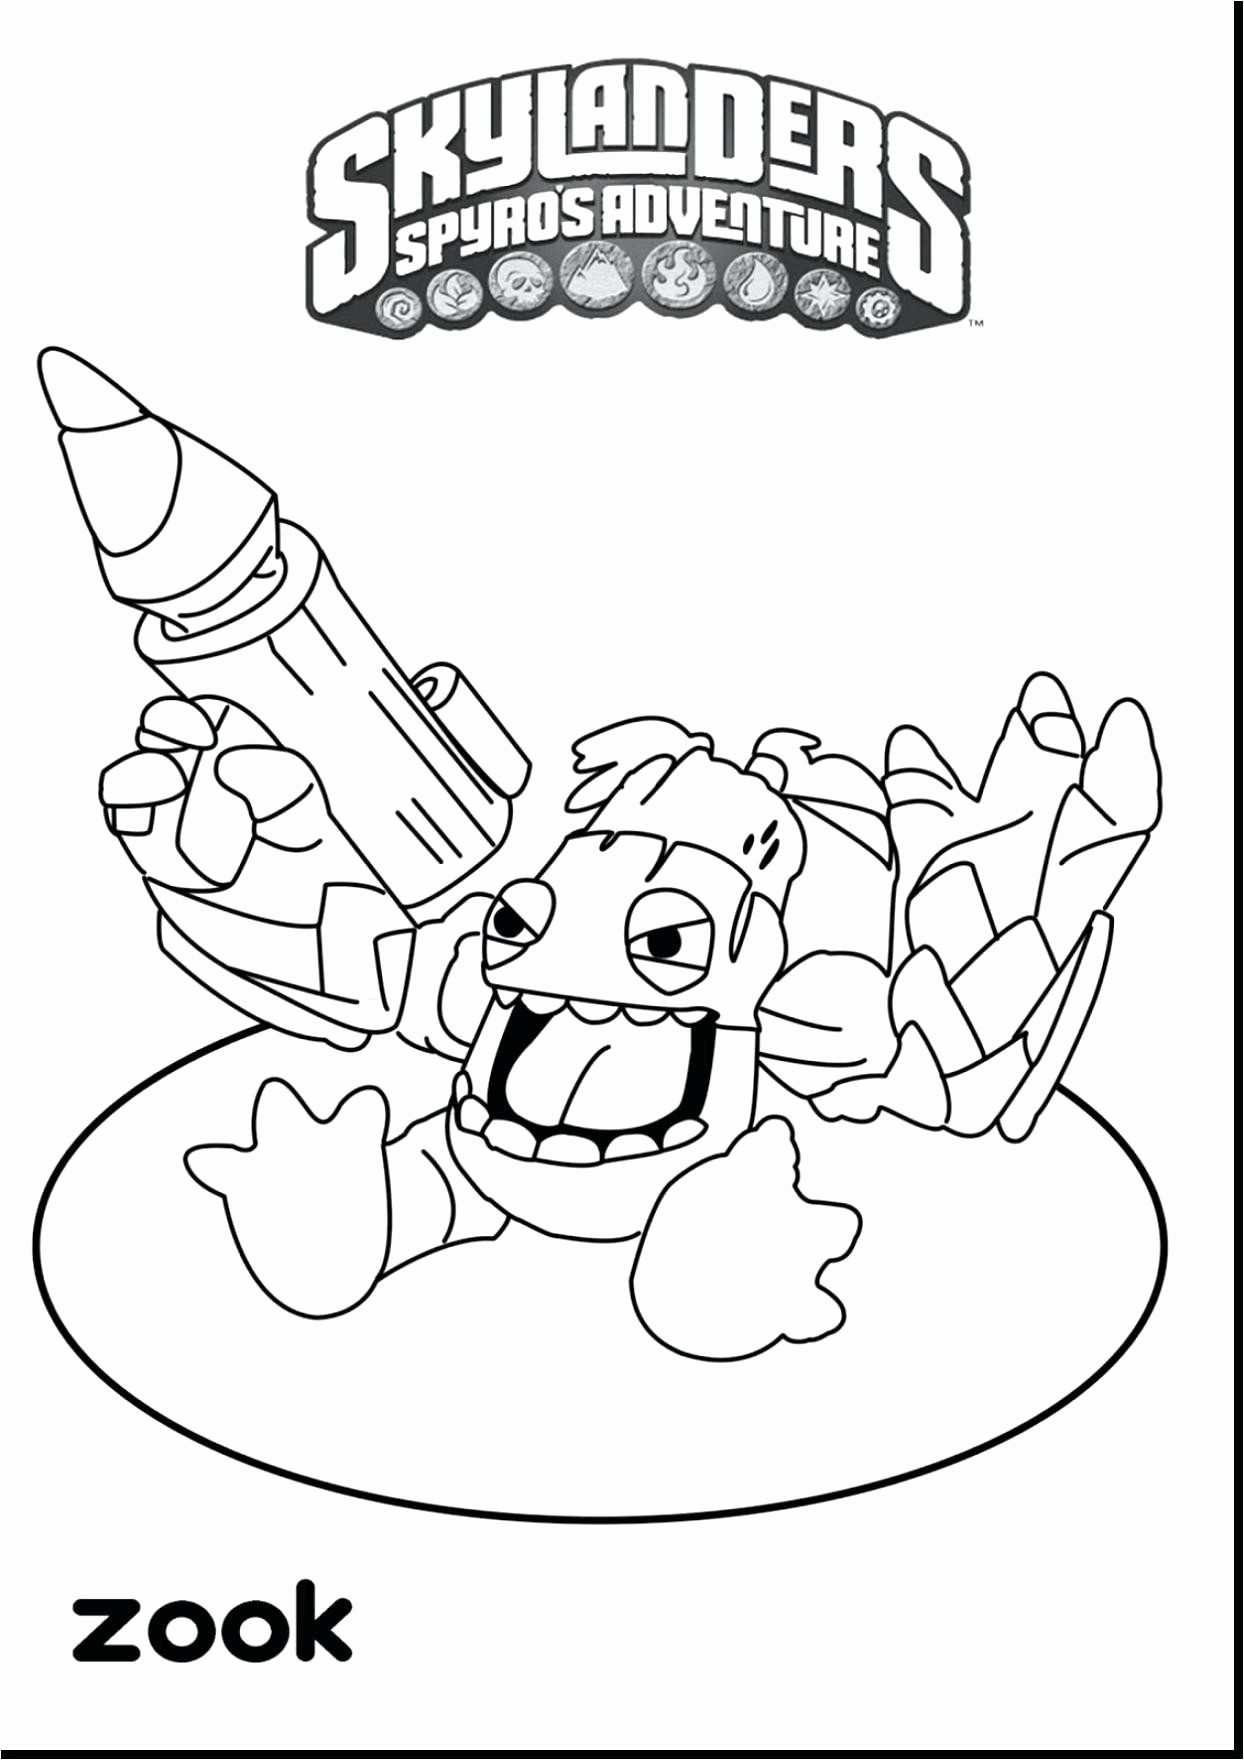 Christmas Elf Coloring Pages Free Elf Coloring Pages Elegant Elf To Print Elegant Christmas Elf